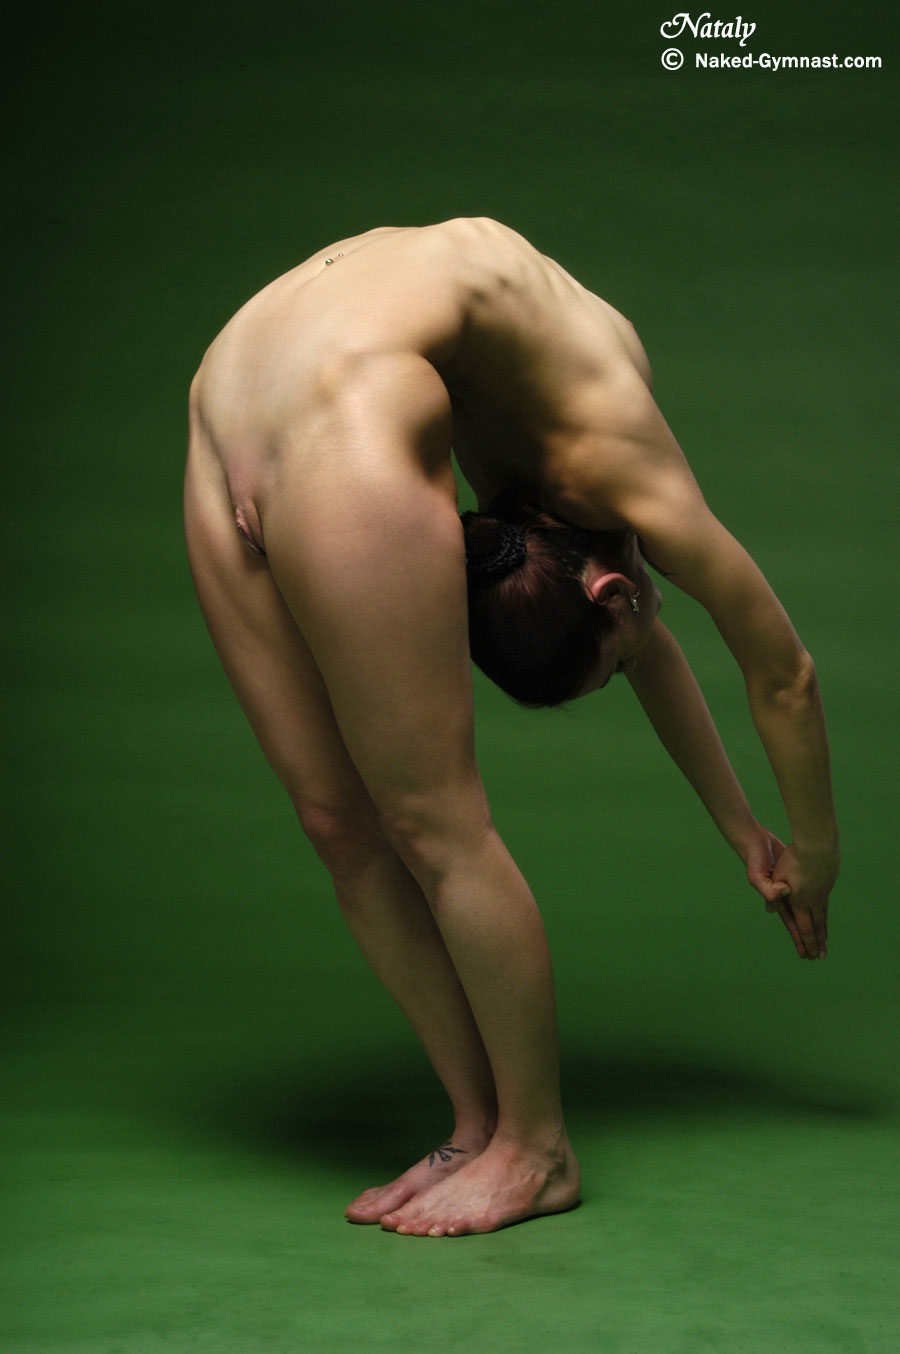 Flexible gymnasts nude